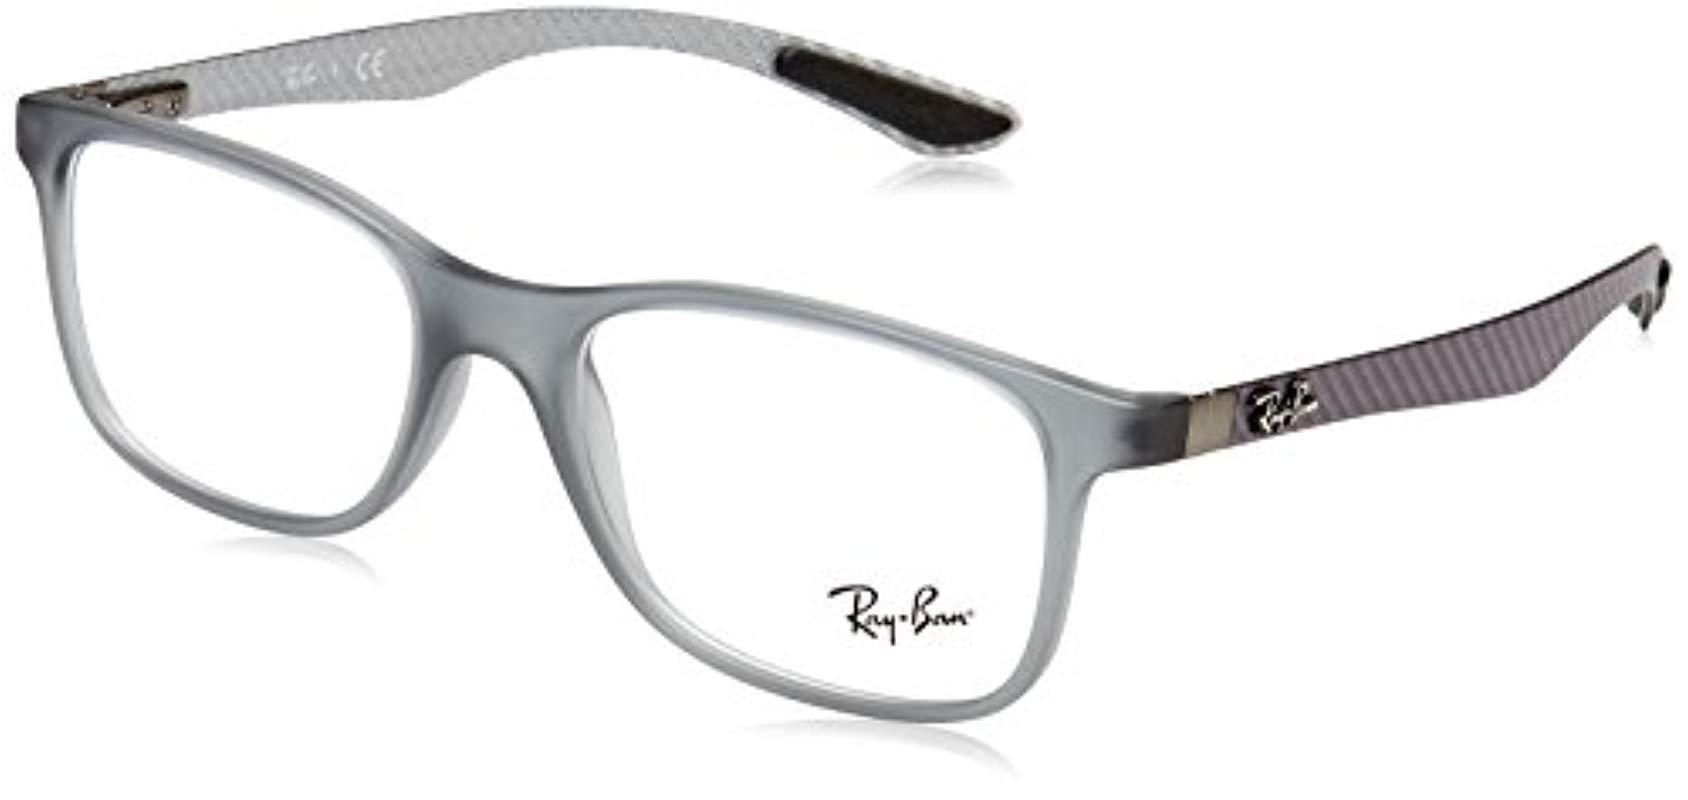 6073bf6904 Ray-Ban 8903 Optical Frames